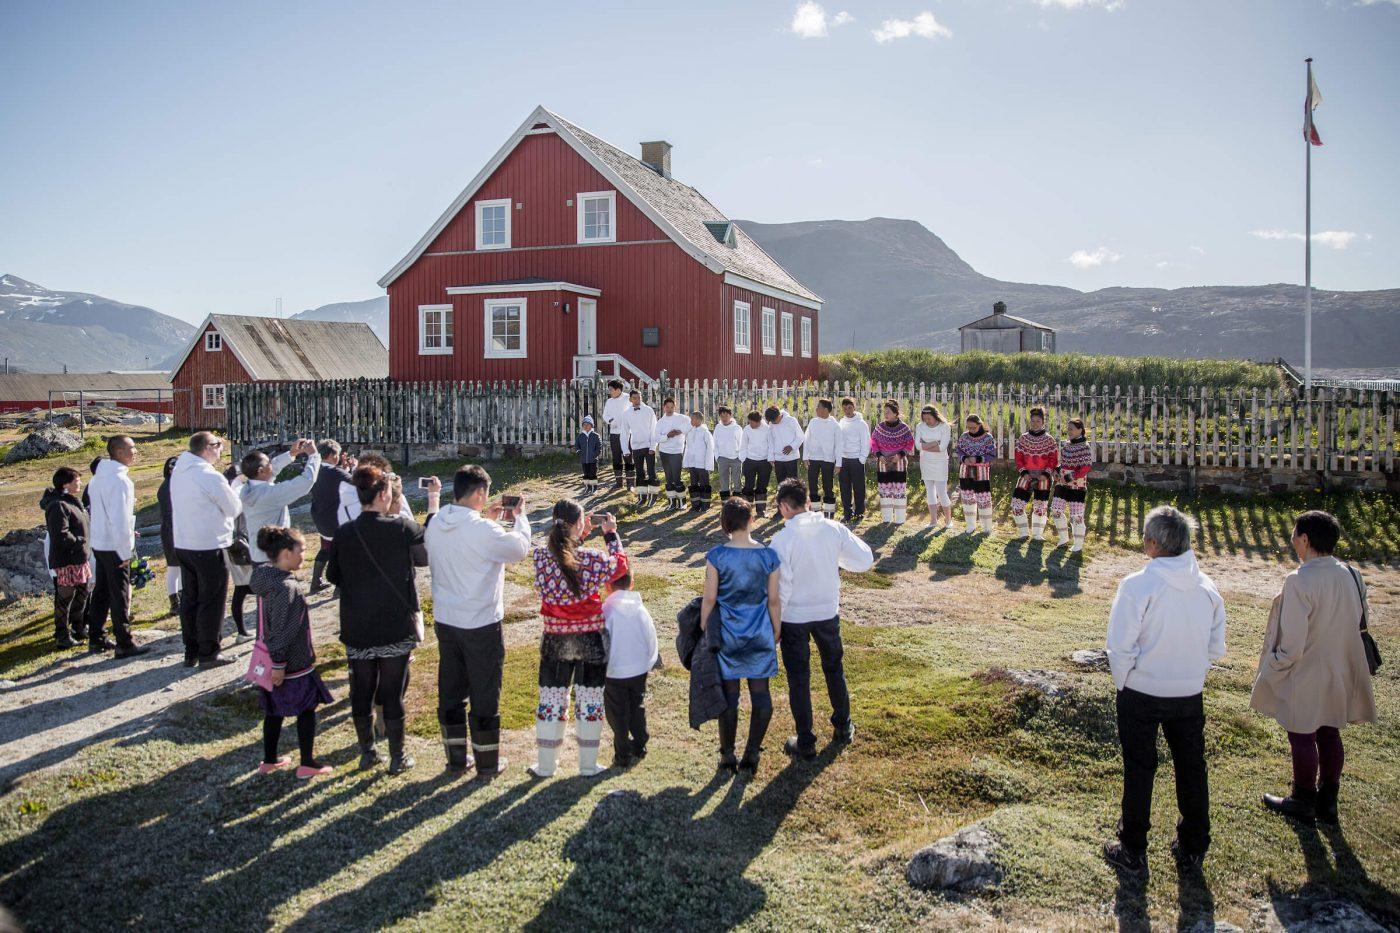 Kids from Nanortalik in South Greenland lining up for their day of Conformation at the church. Photo by Mads Pihl.